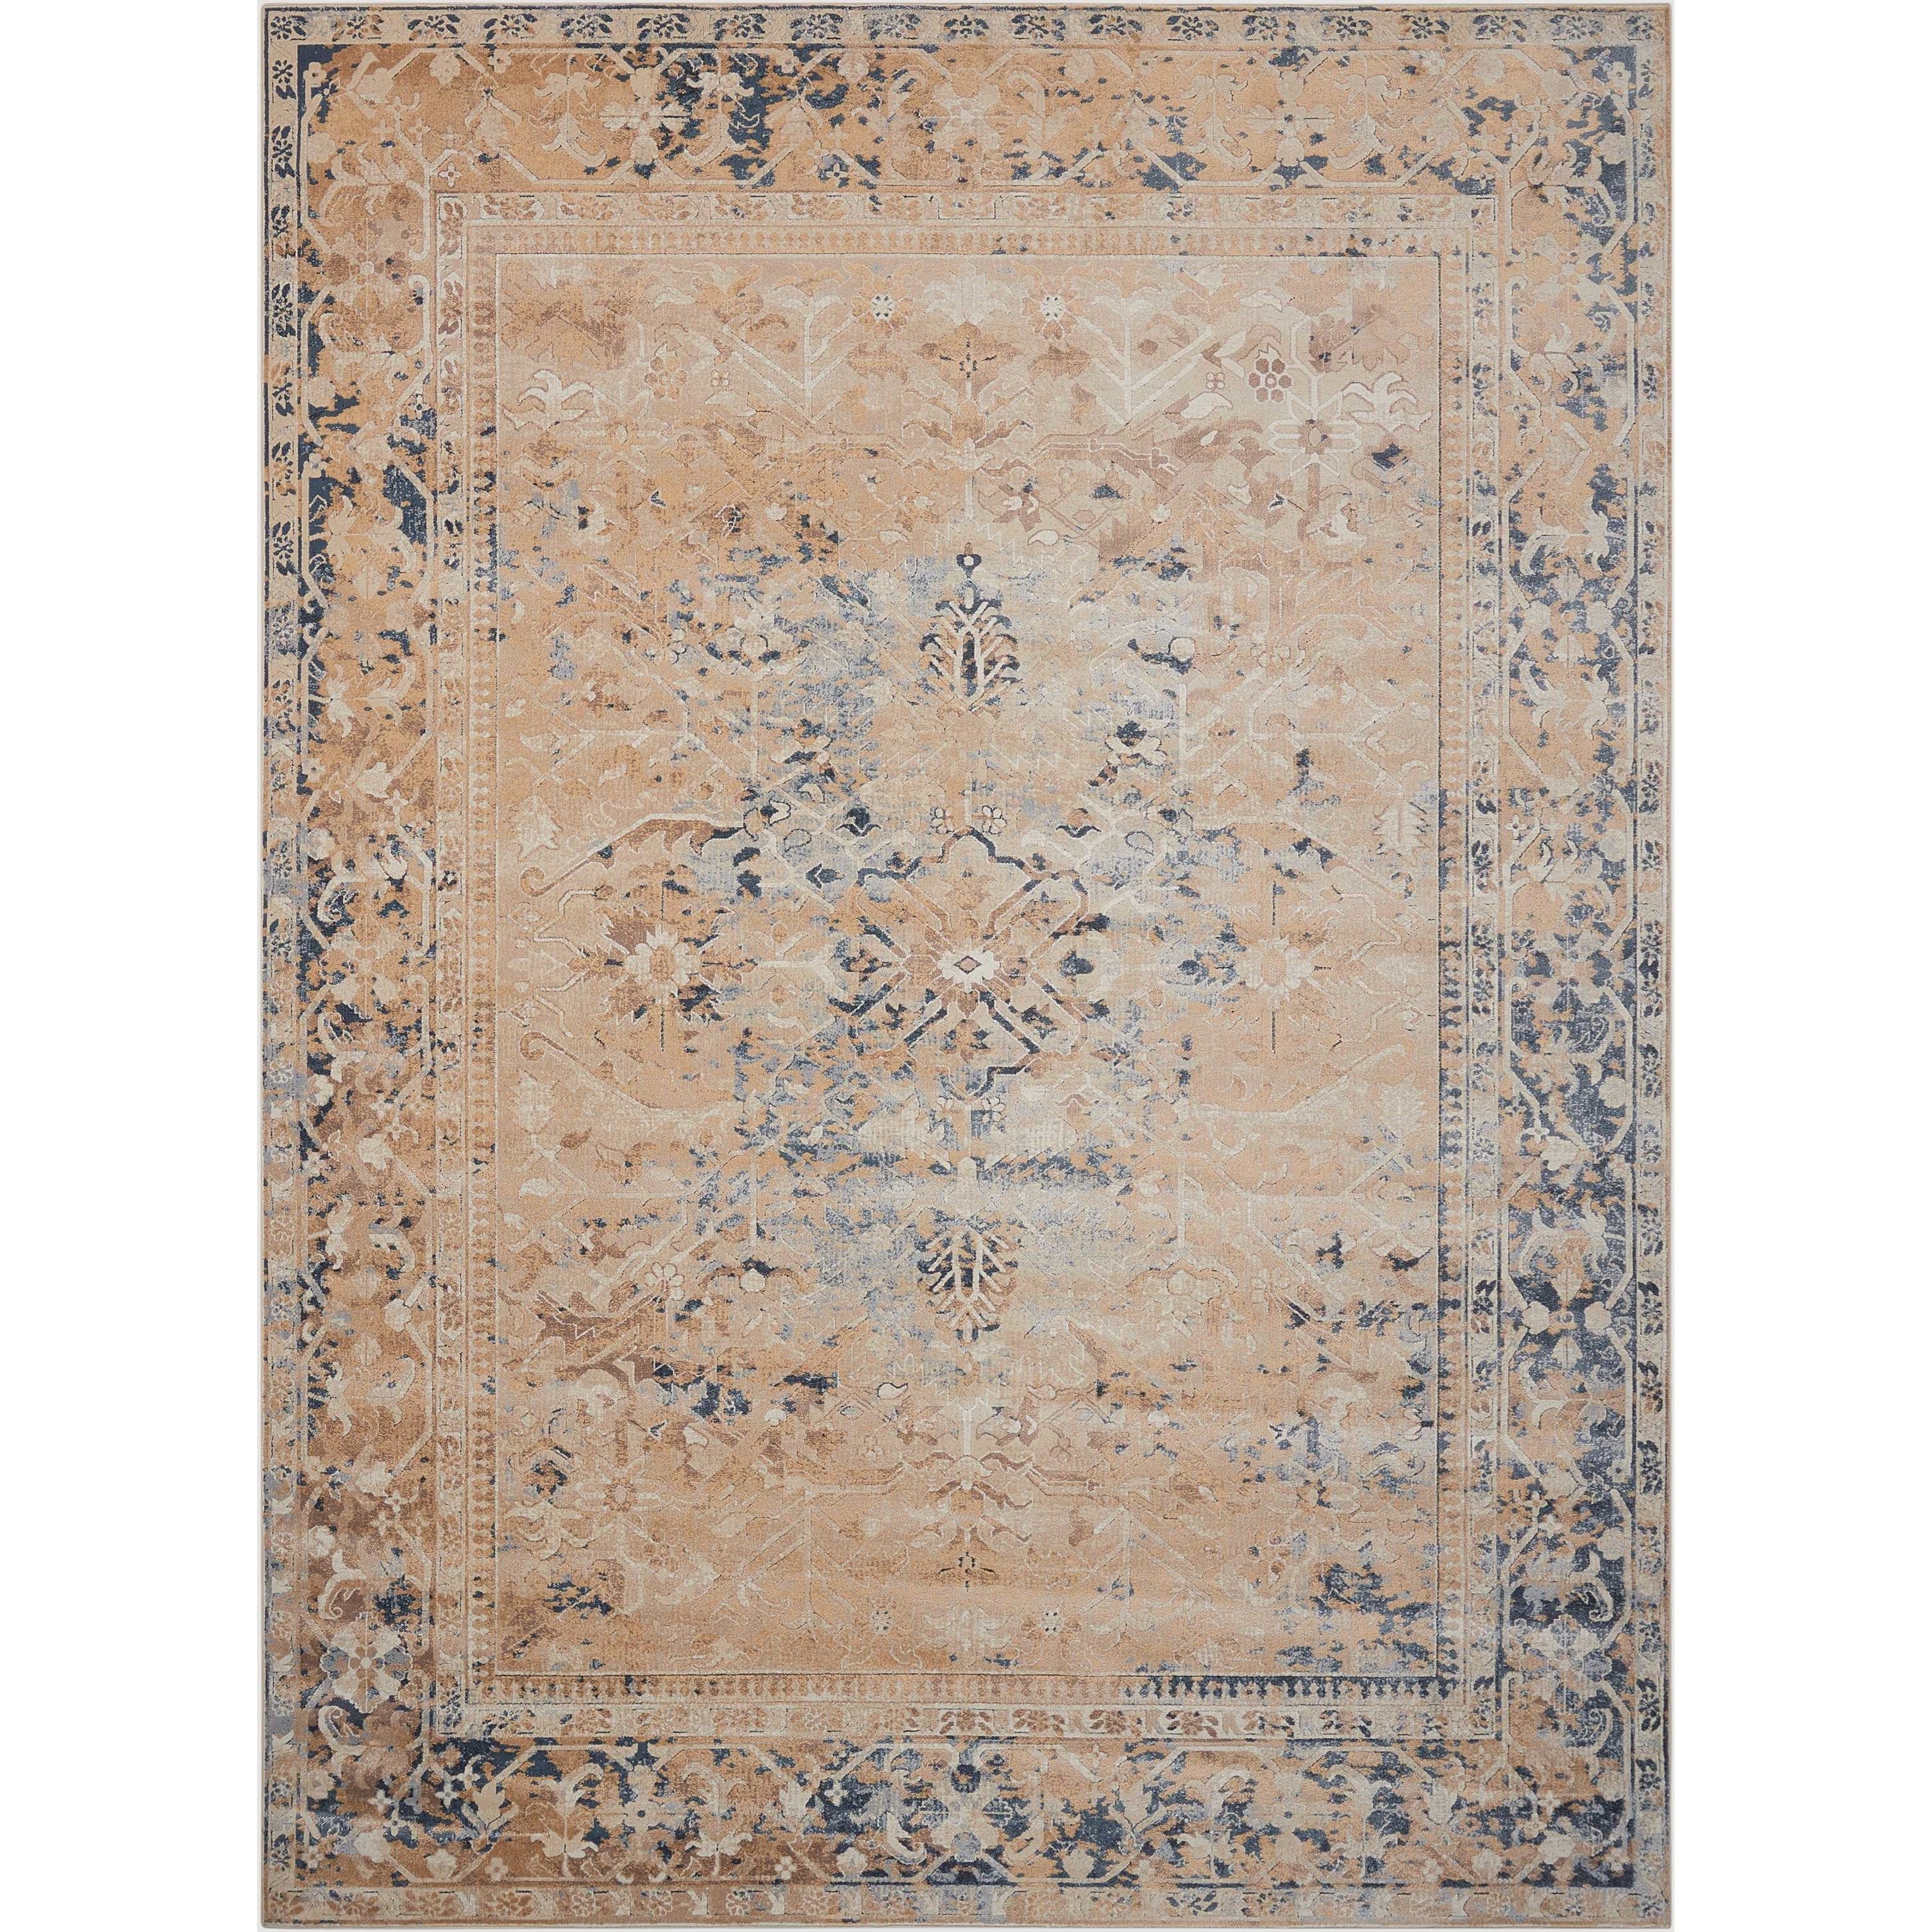 Malta 9' x 12' Rug by kathy ireland Home by Nourison at Home Collections Furniture